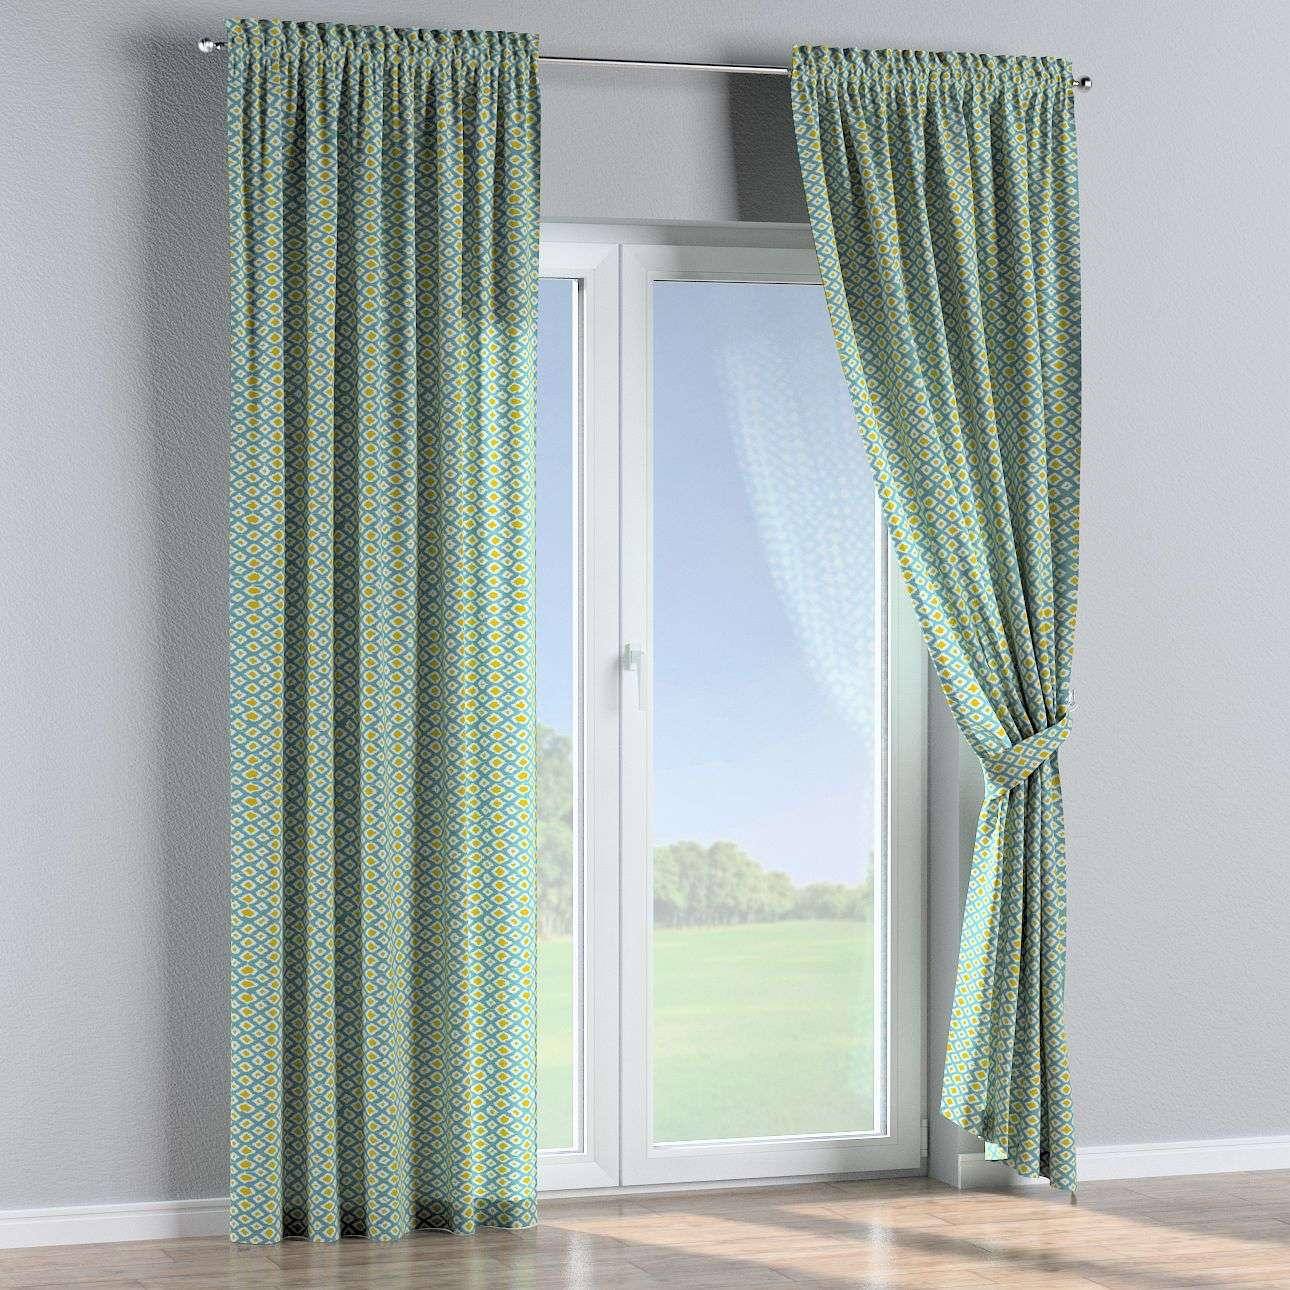 Slot and frill curtains in collection Comics/Geometrical, fabric: 141-20